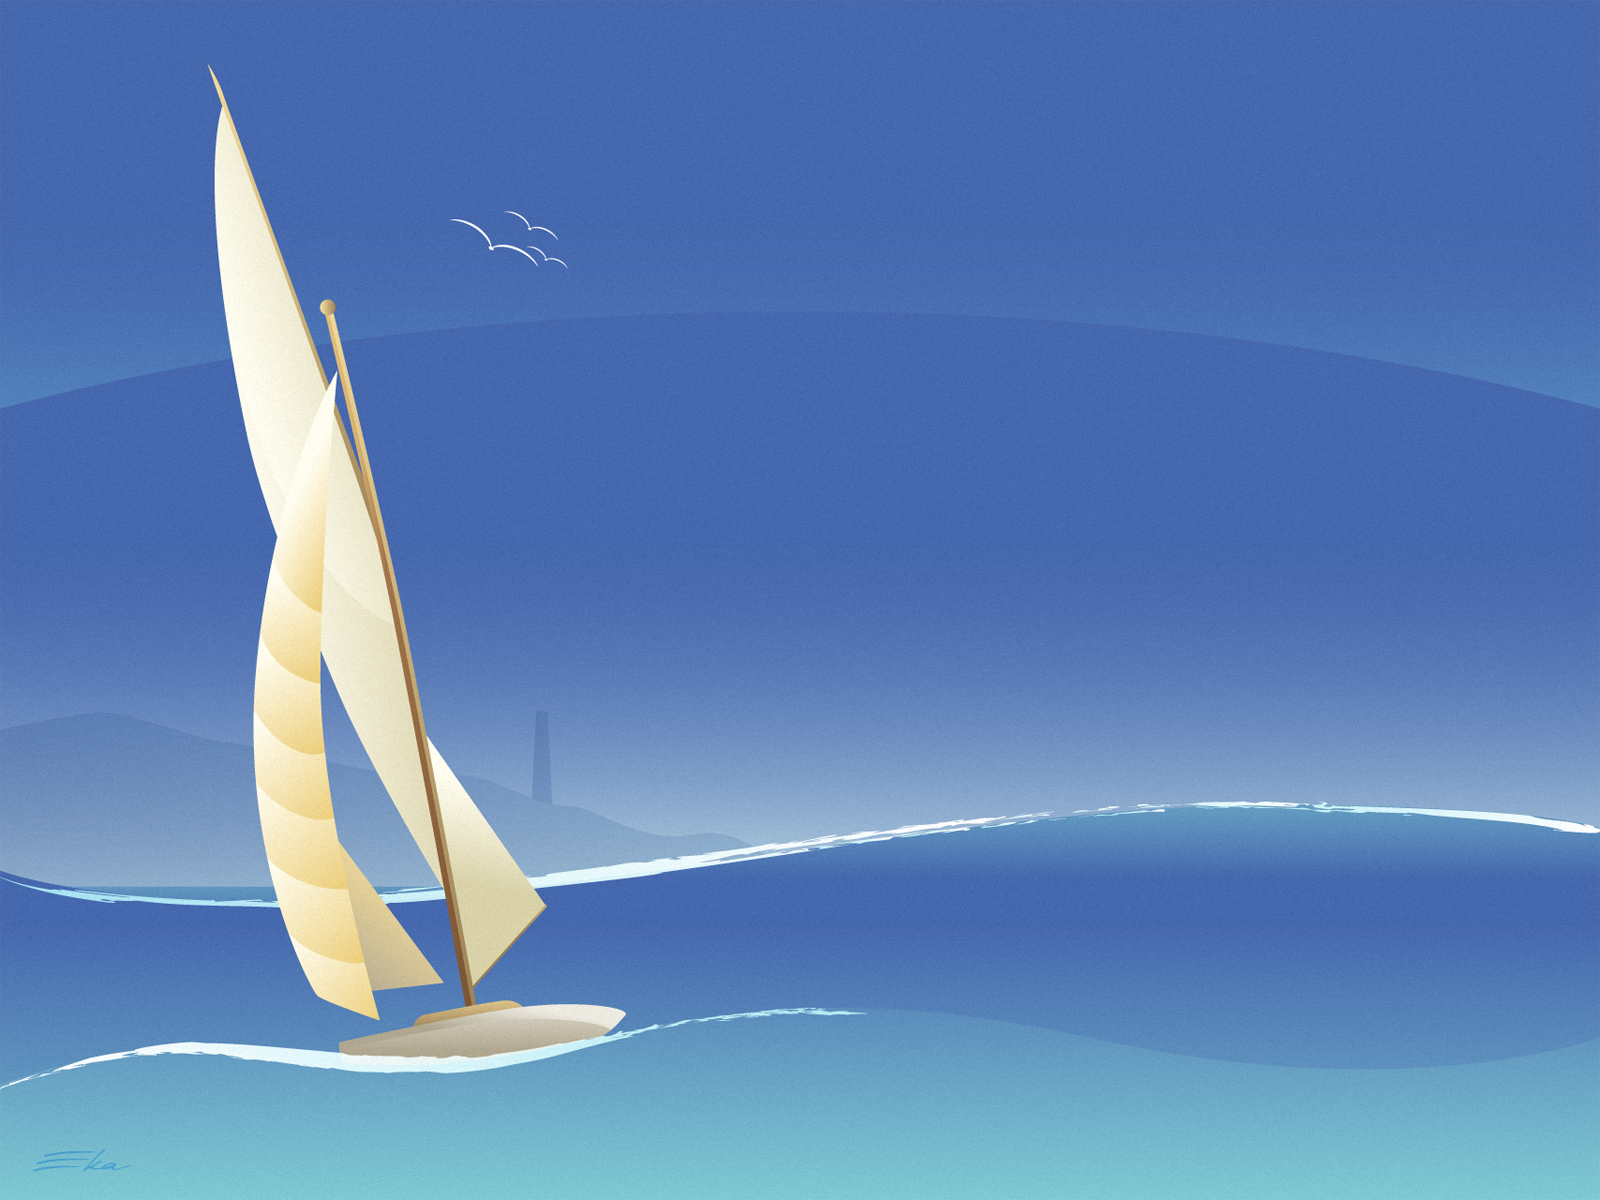 Sailing in Blue by ekster